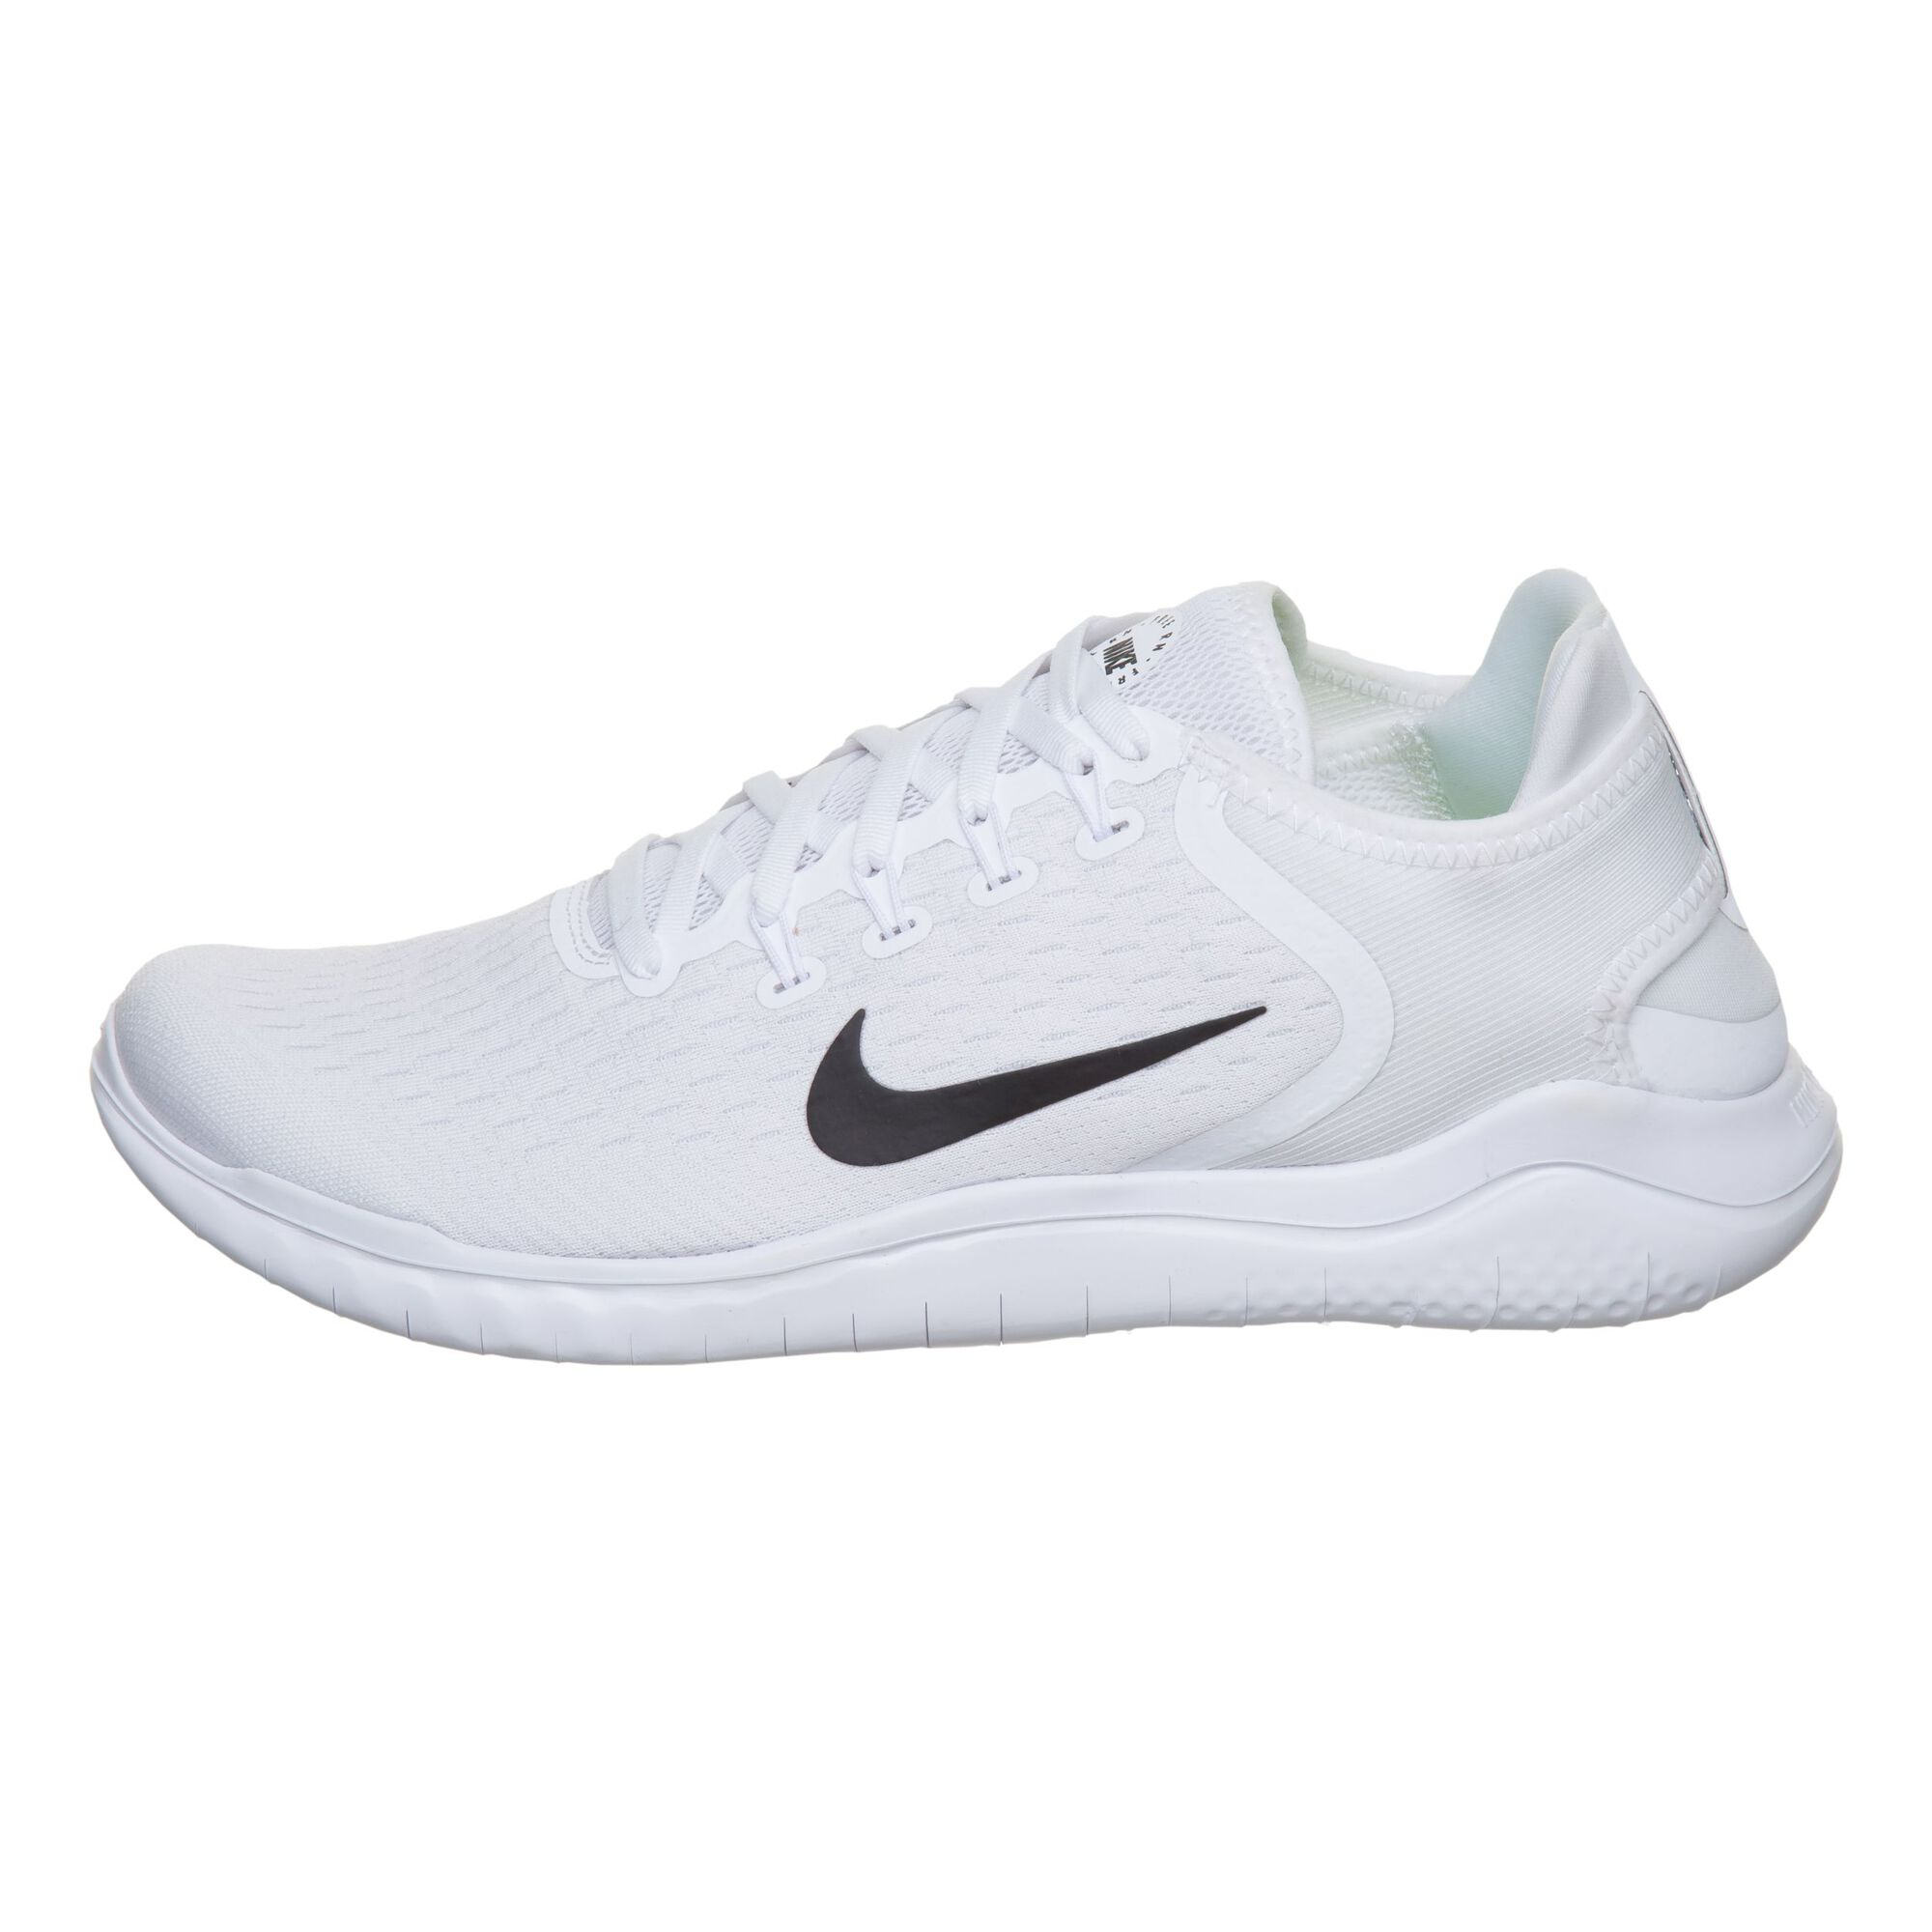 6ffb0623164b4 buy Nike Free Run 2018 Natural Running Shoe Men - White